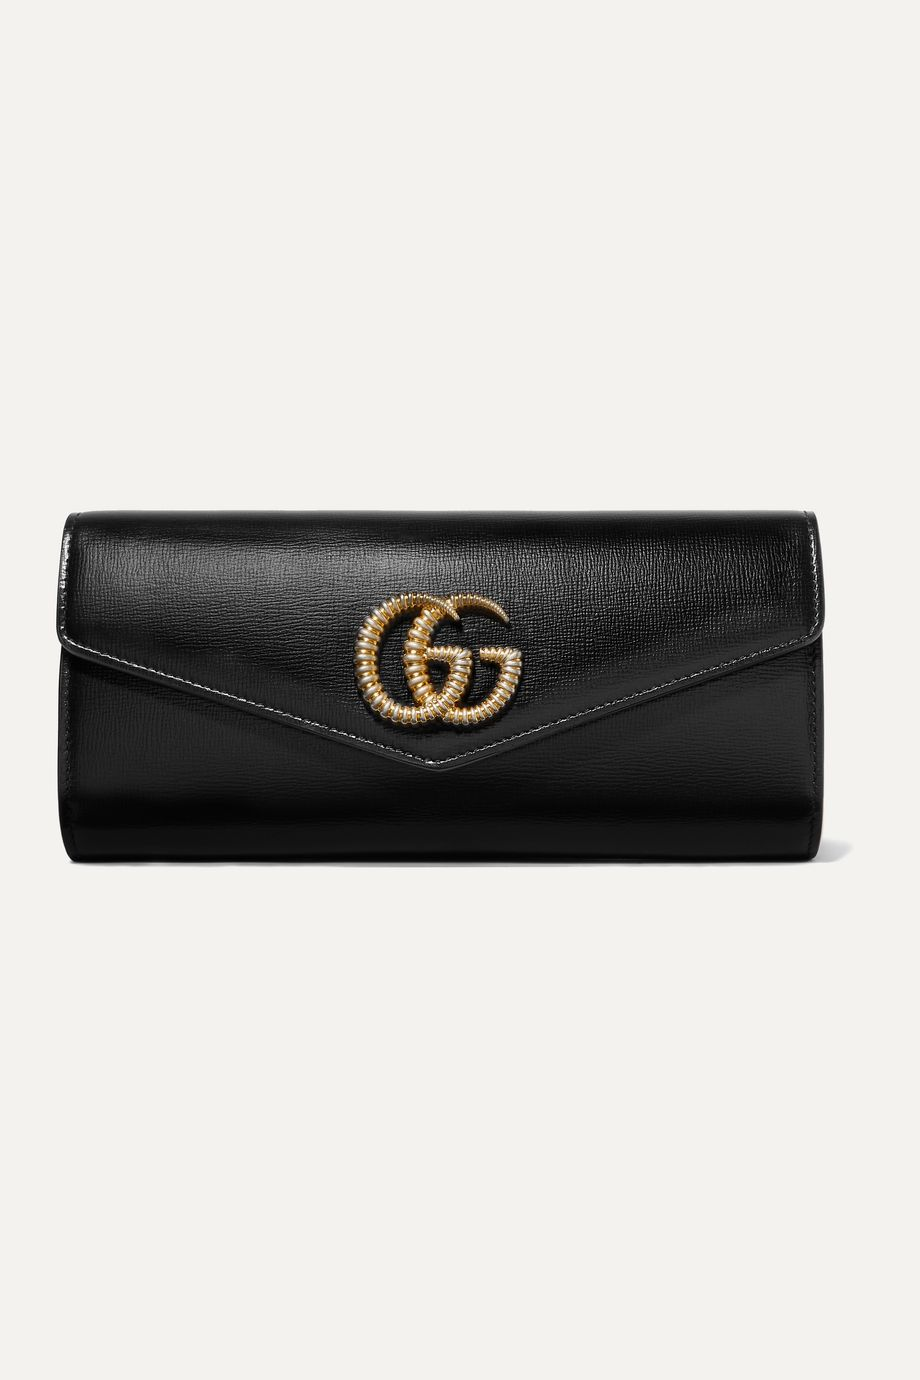 Gucci Broadway textured-leather clutch